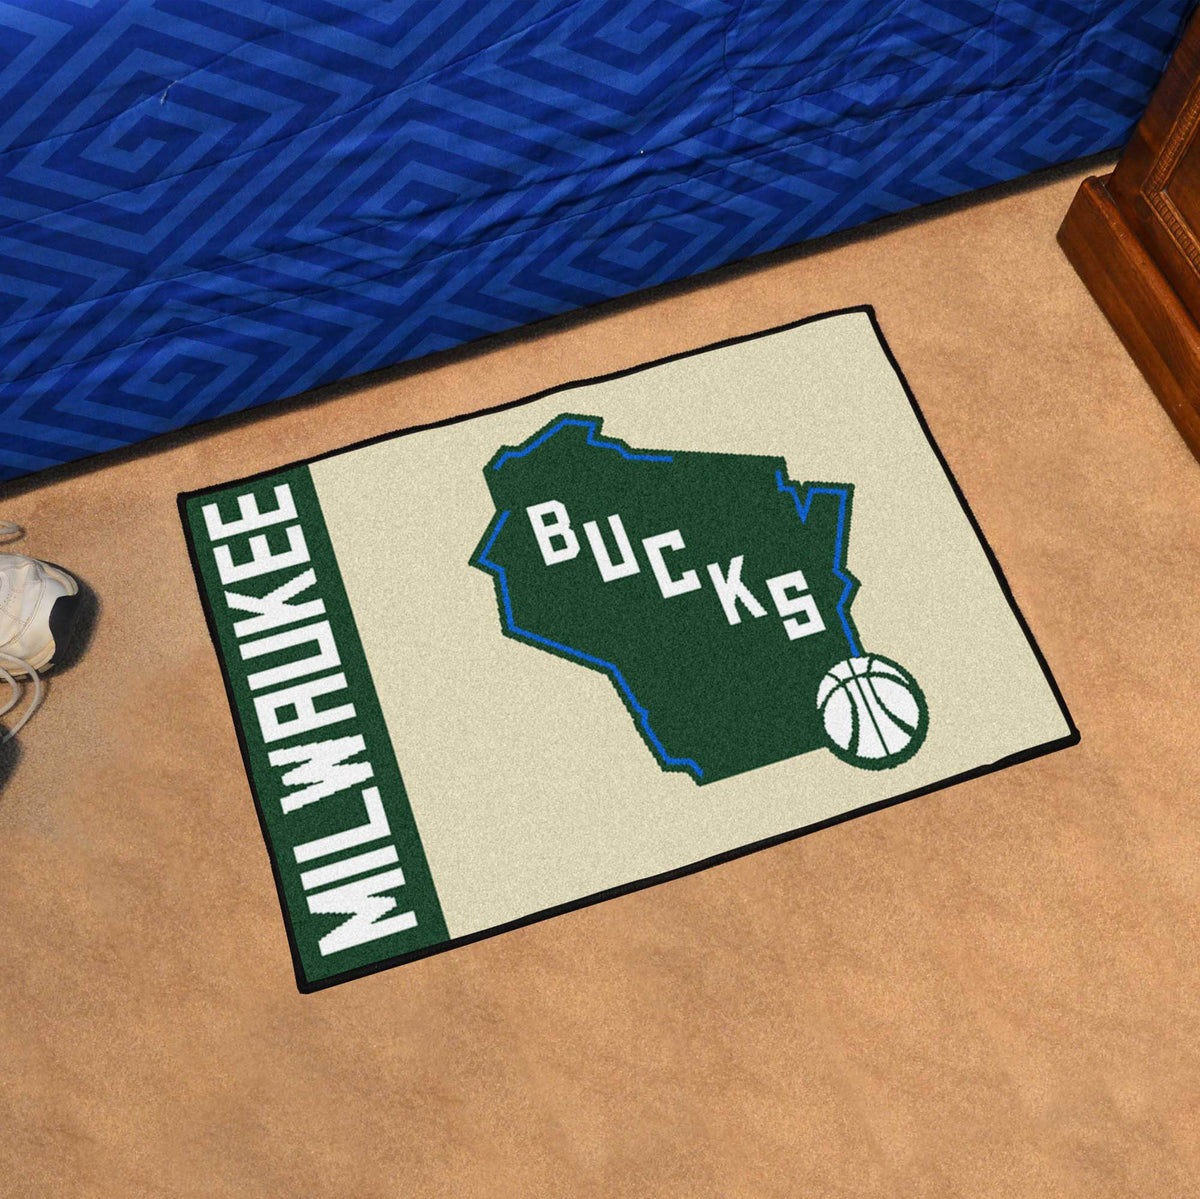 NBA - Uniform Starter Mat NBA Mats, Rectangular Mats, Uniform Starter Mat, NBA, Home Fan Mats Milwaukee Bucks